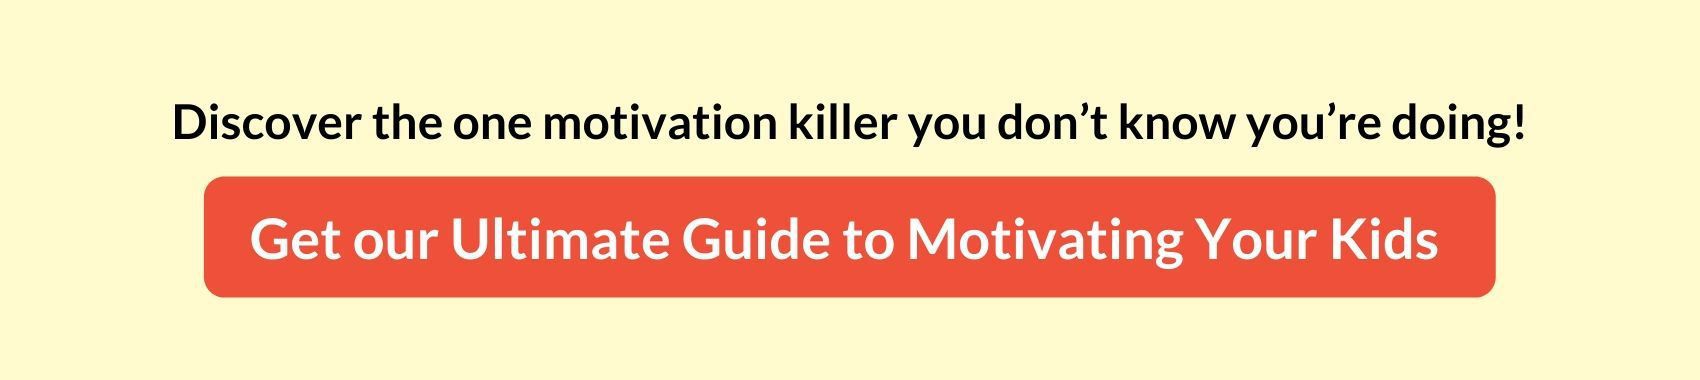 Ultimate Guide for Motivating Kids